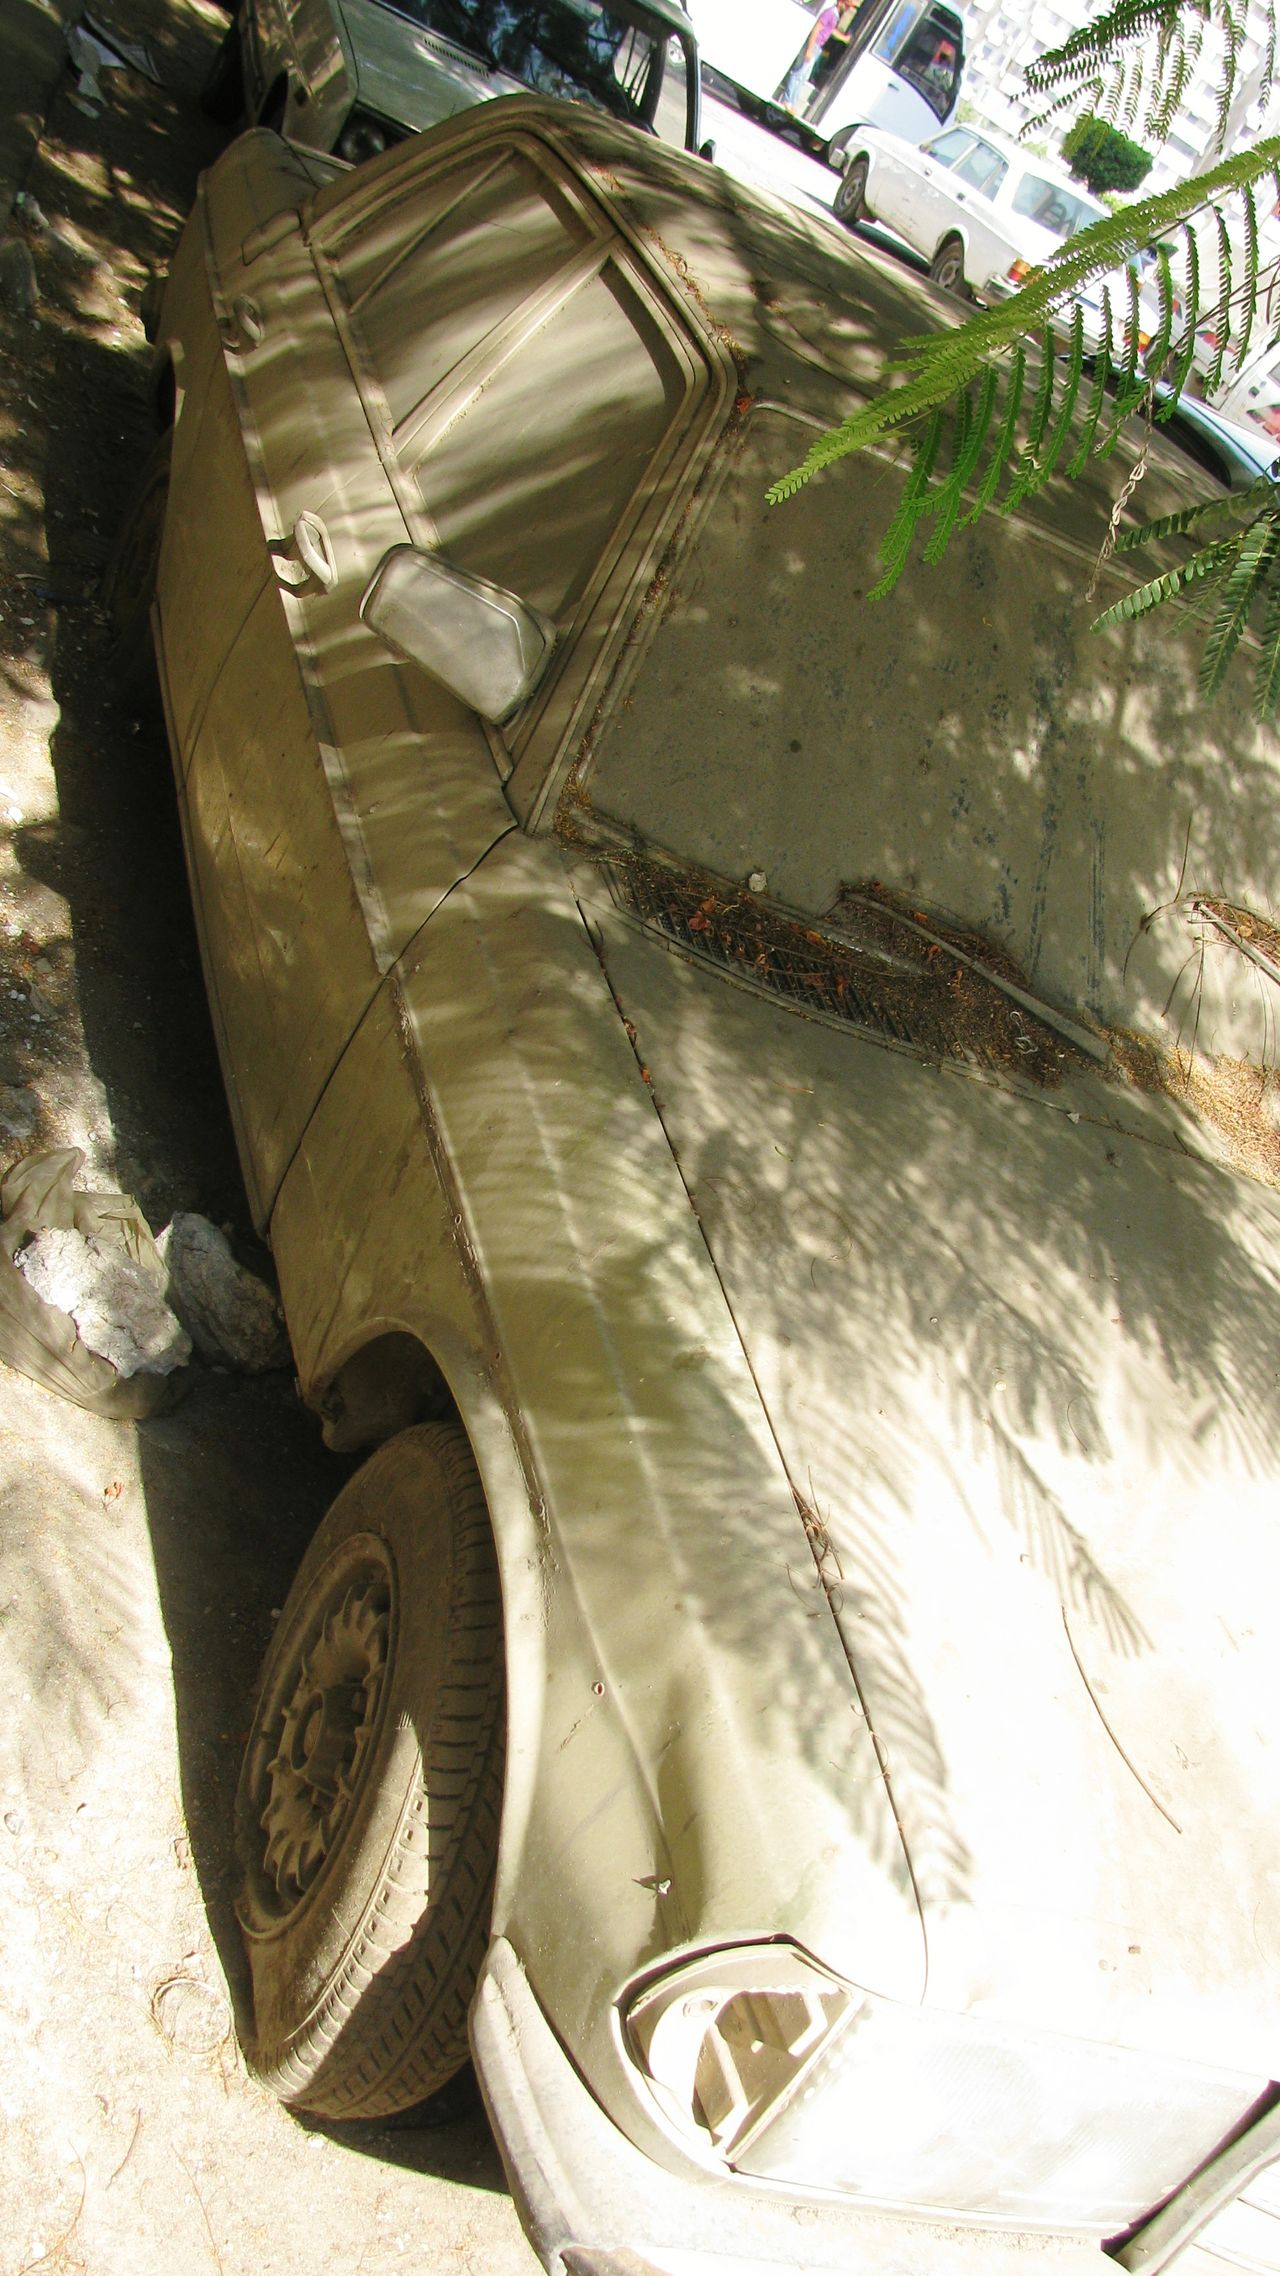 Mud Outdoors Sand Nature No People Close-up Day old car Vintage Cars Old Car Car Dirty Travel Destinations Cairo Egypt Land Vehicle Transportation City Downtown District Rusty Metal Rusty Autos